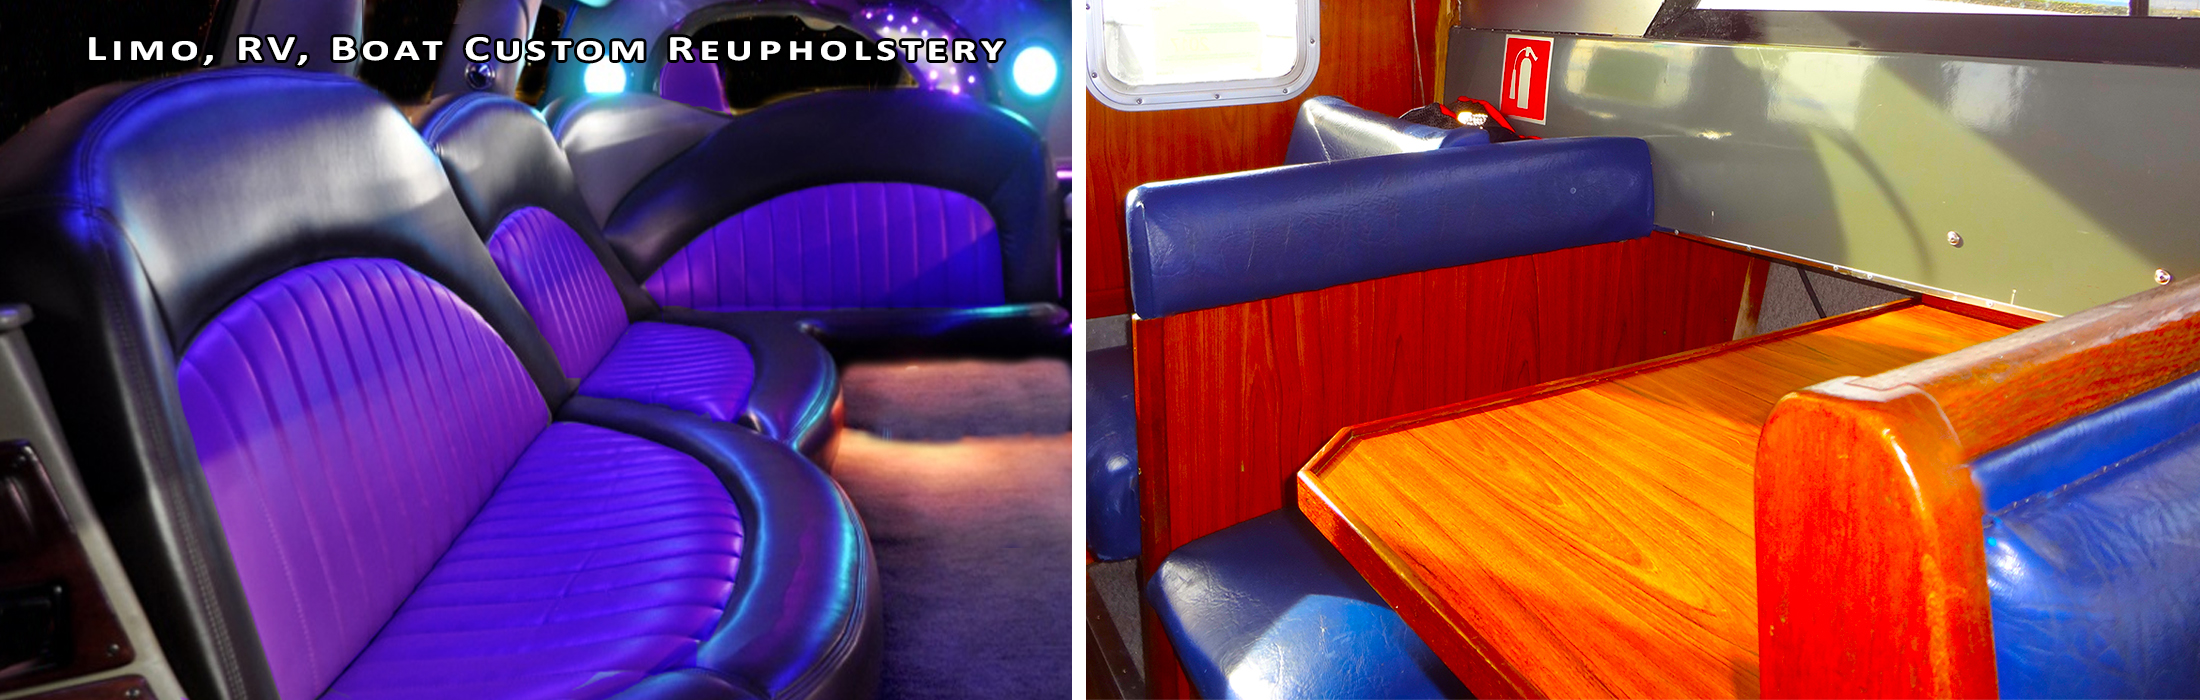 ... Limo, RV, Boat Custom Reupholstery By Pacific Design Furniture ...